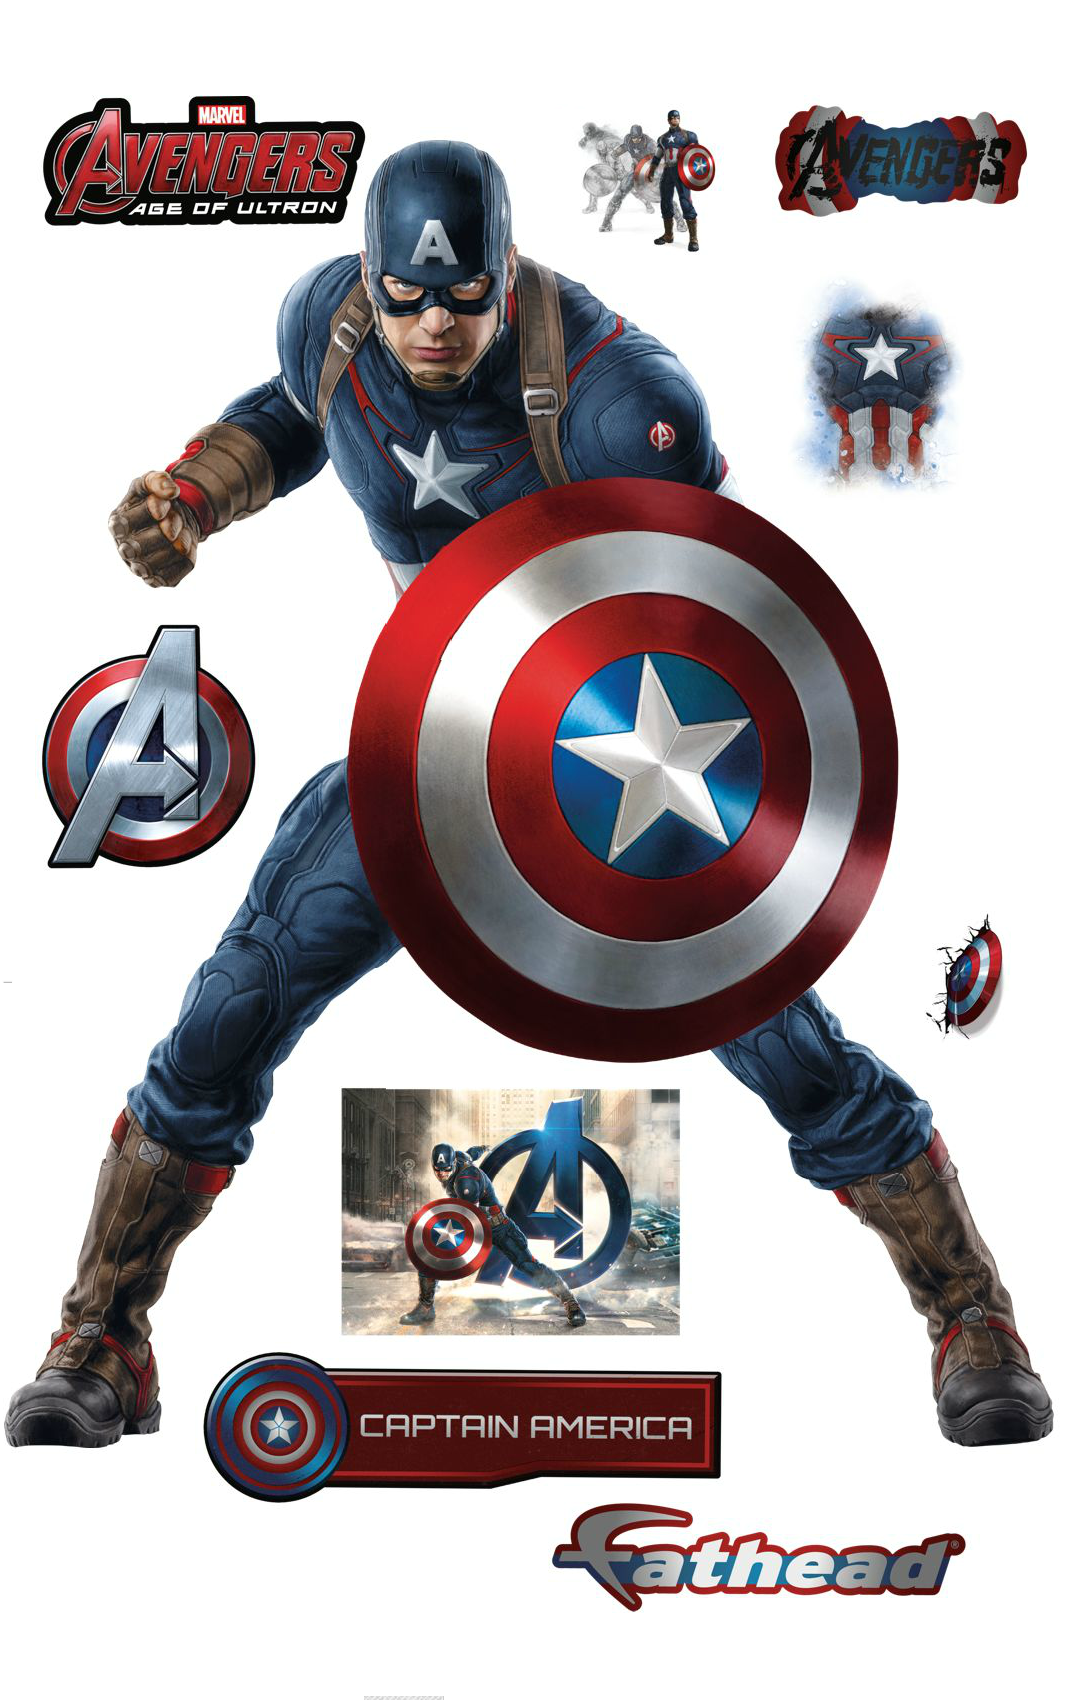 Avengers-Age-of-Ultron-Captain-America-Fathead.png